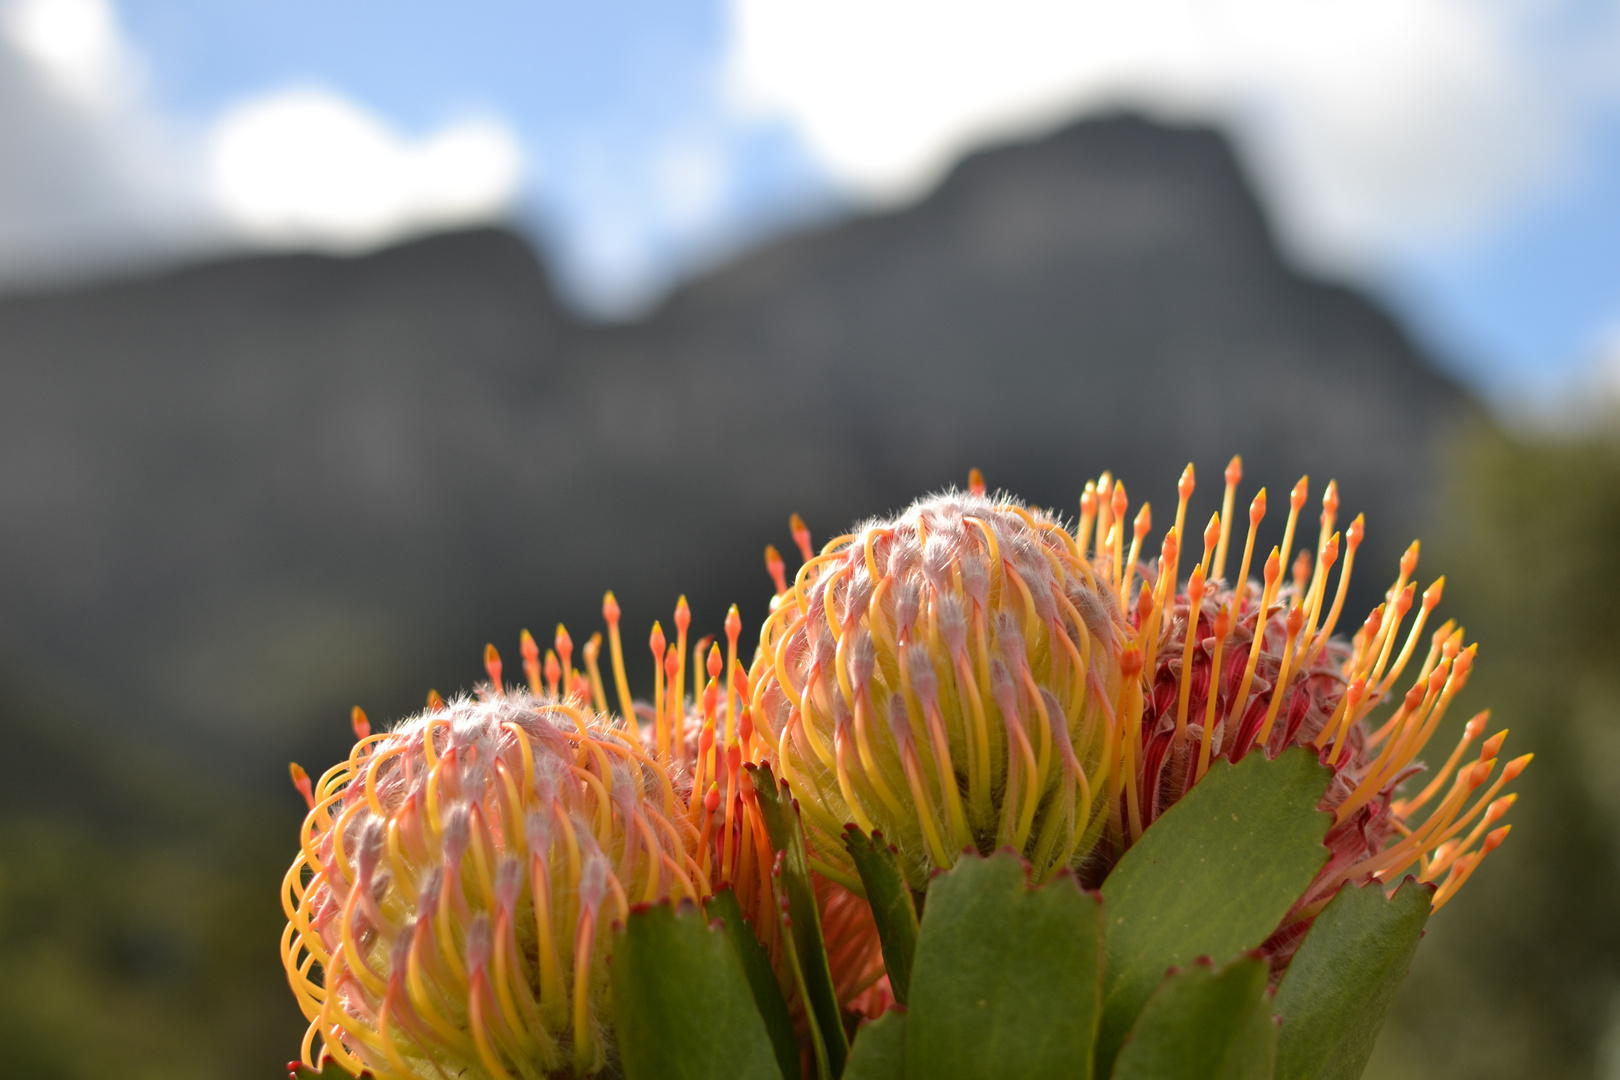 Protea flowers in late spring, Cape Town